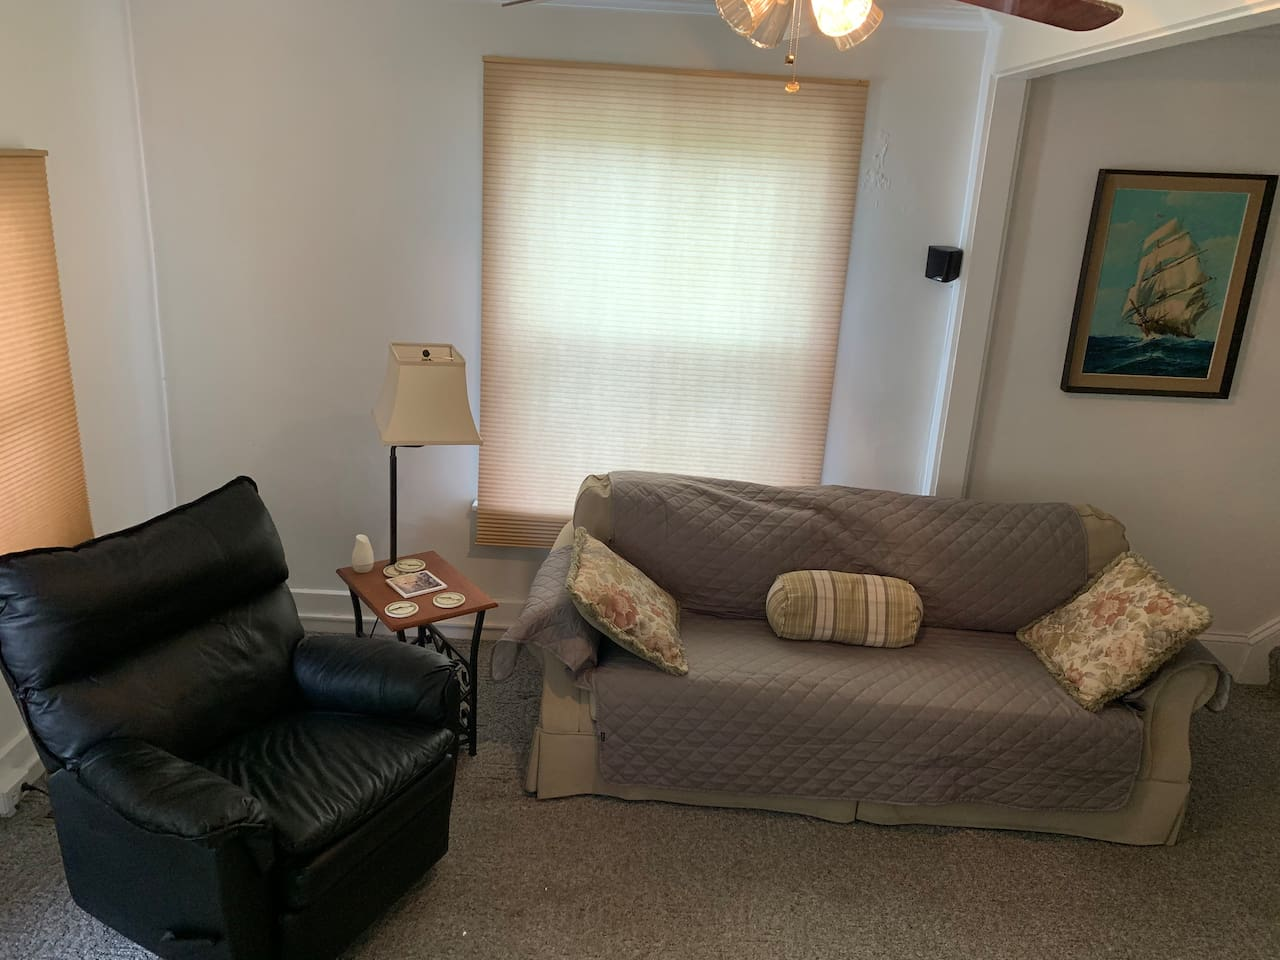 living room -leather chair recliner , couch that has cover that removes for washing, waterproof and sanitary!